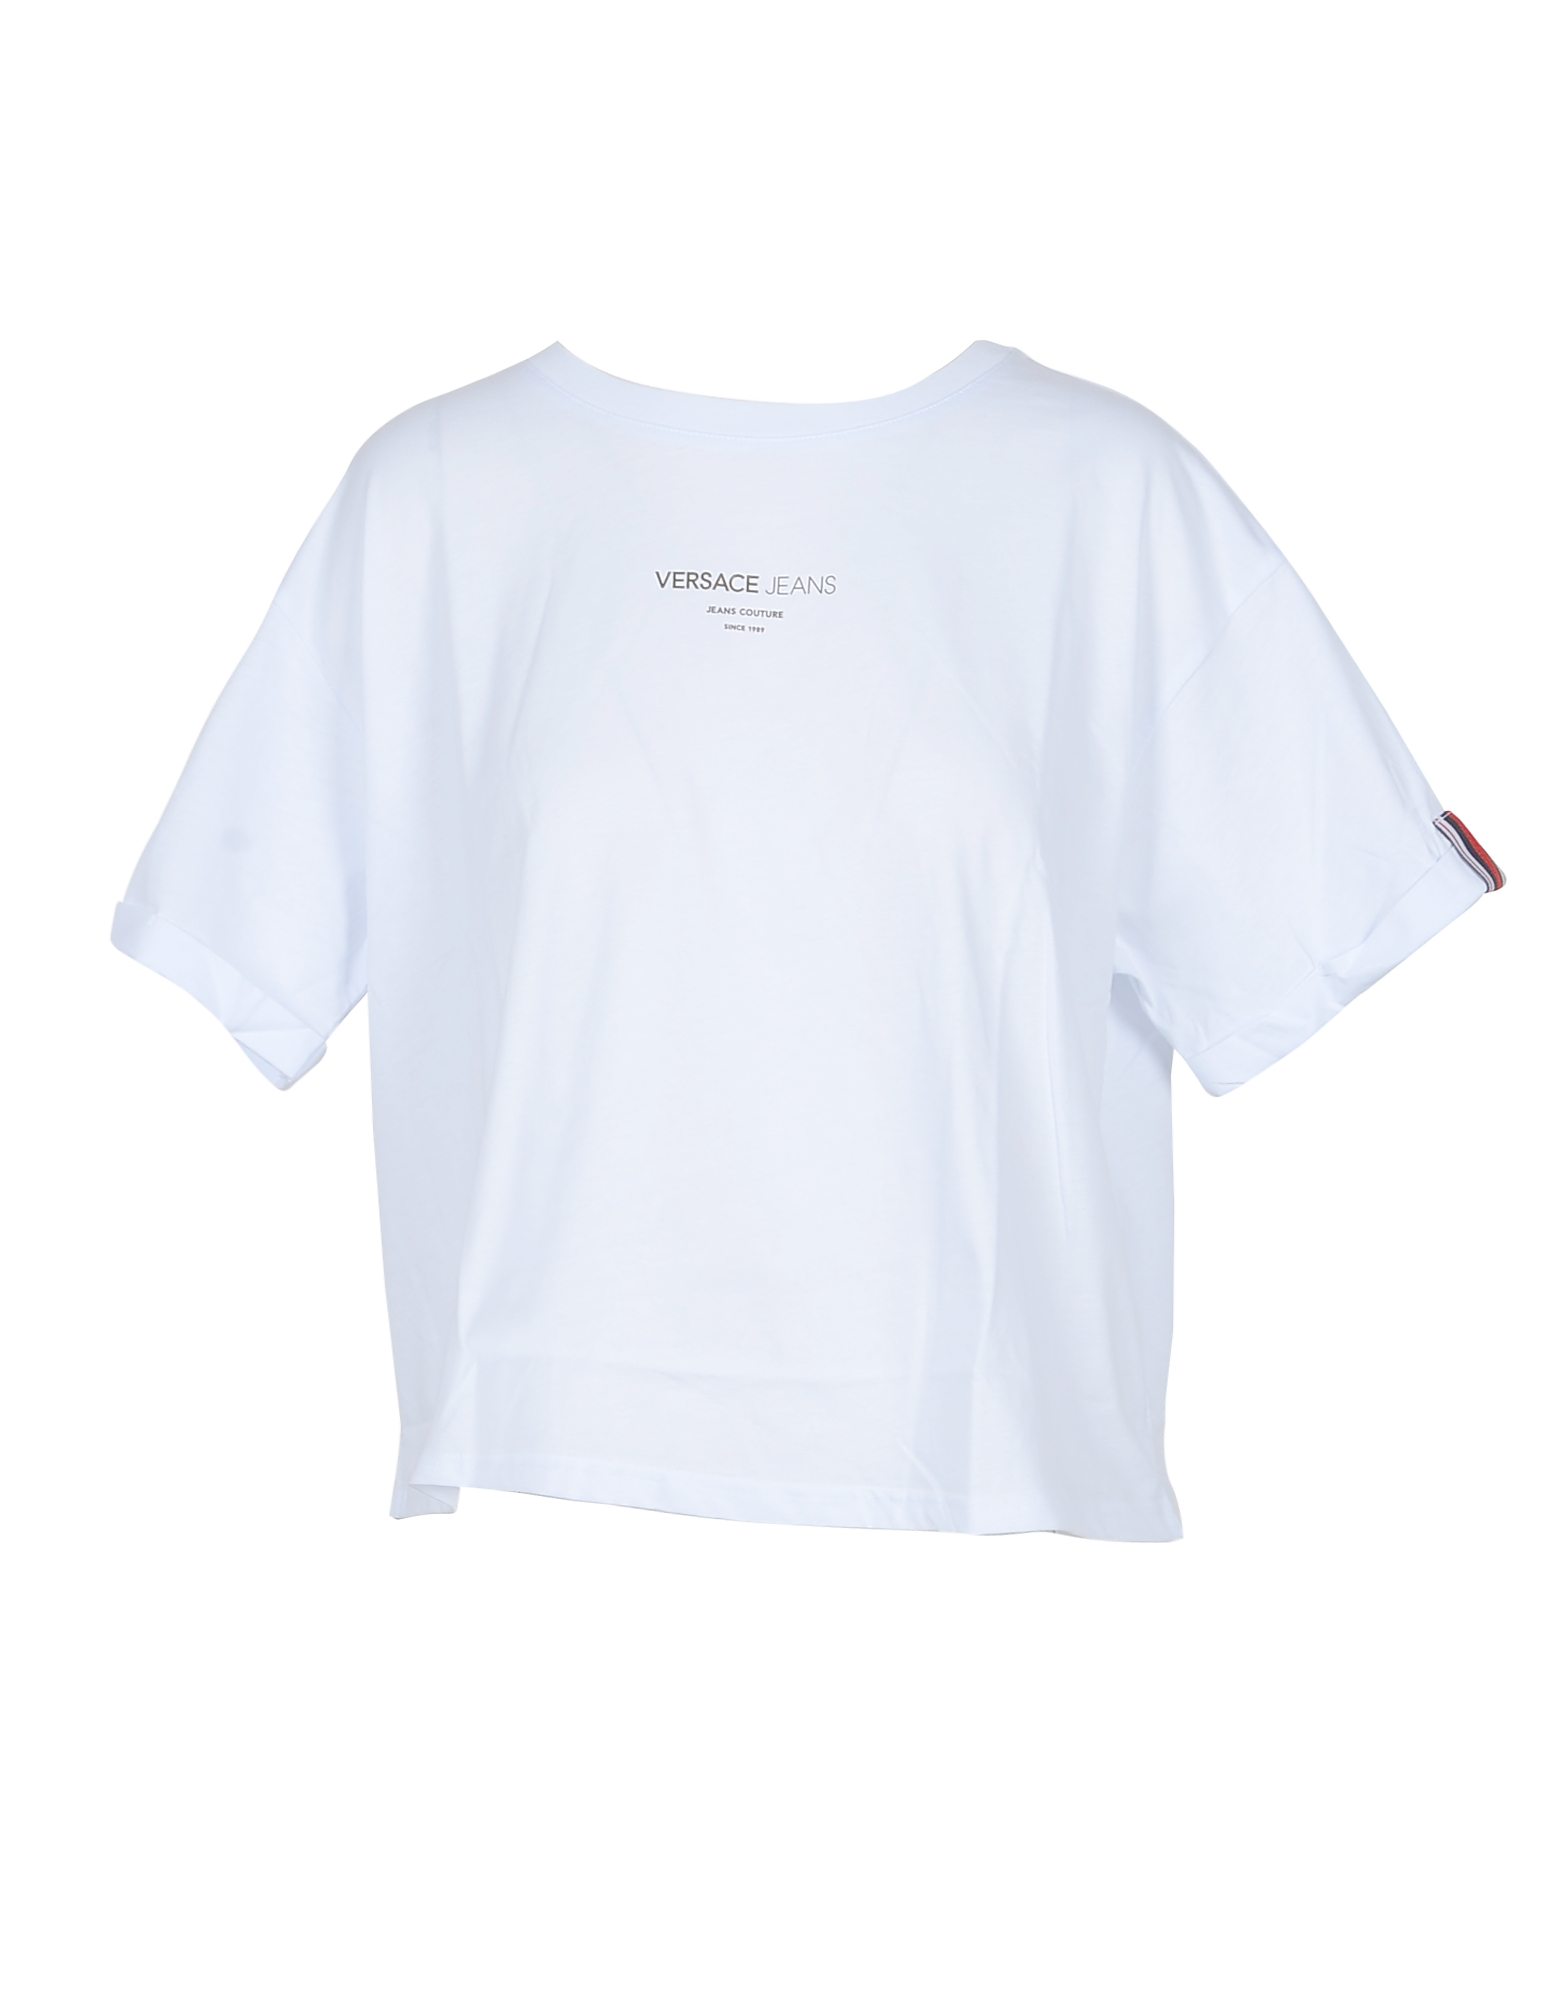 Versace Jeans Designer T-Shirts & Tops, White Cotton Oversized Women's T-Shirt